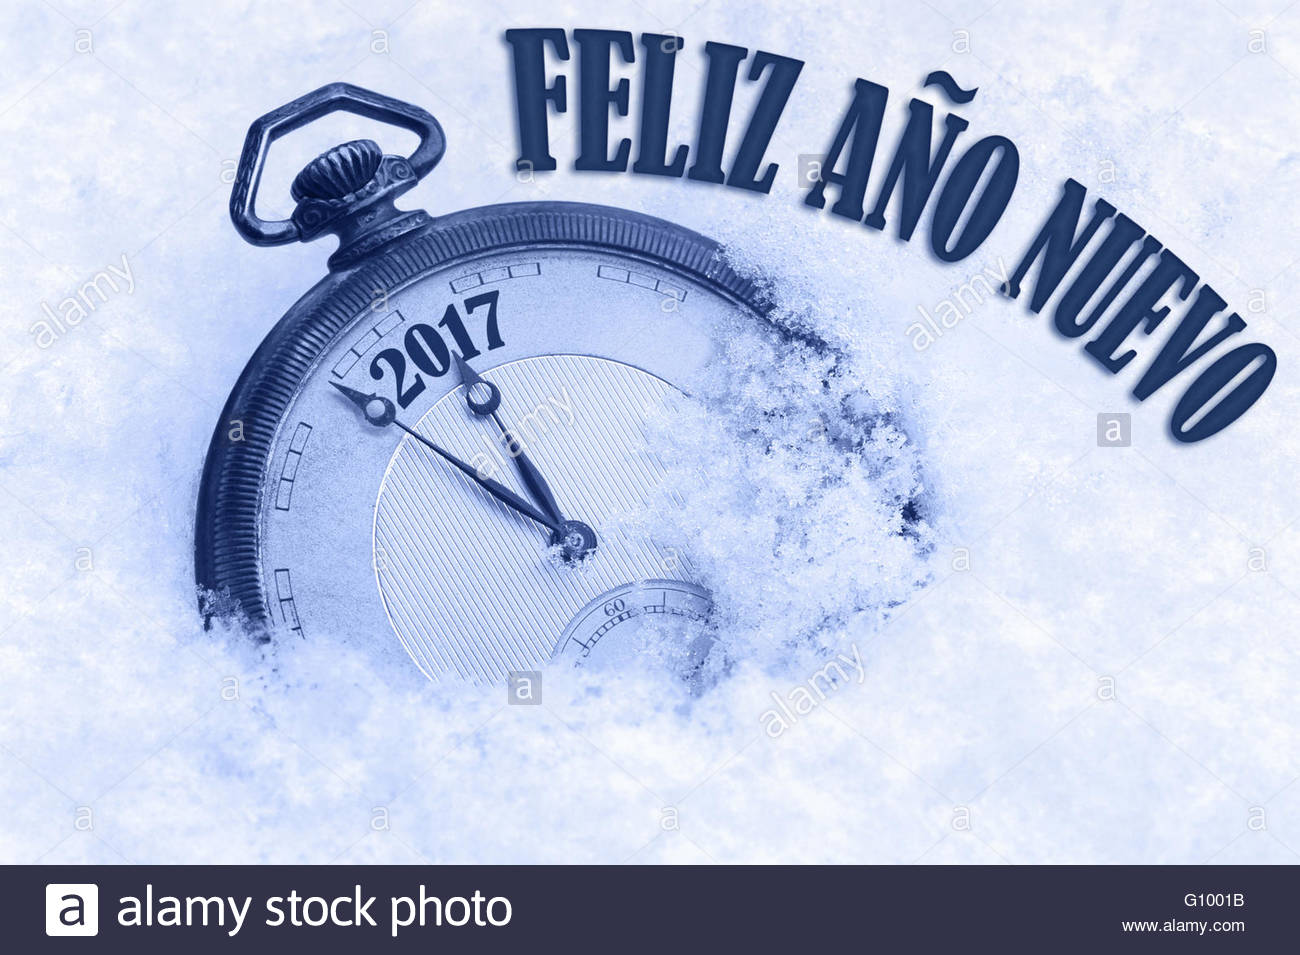 Happy New Year 2017 greeting in Spanish language, Feliz ano nuevo text - Stock Image